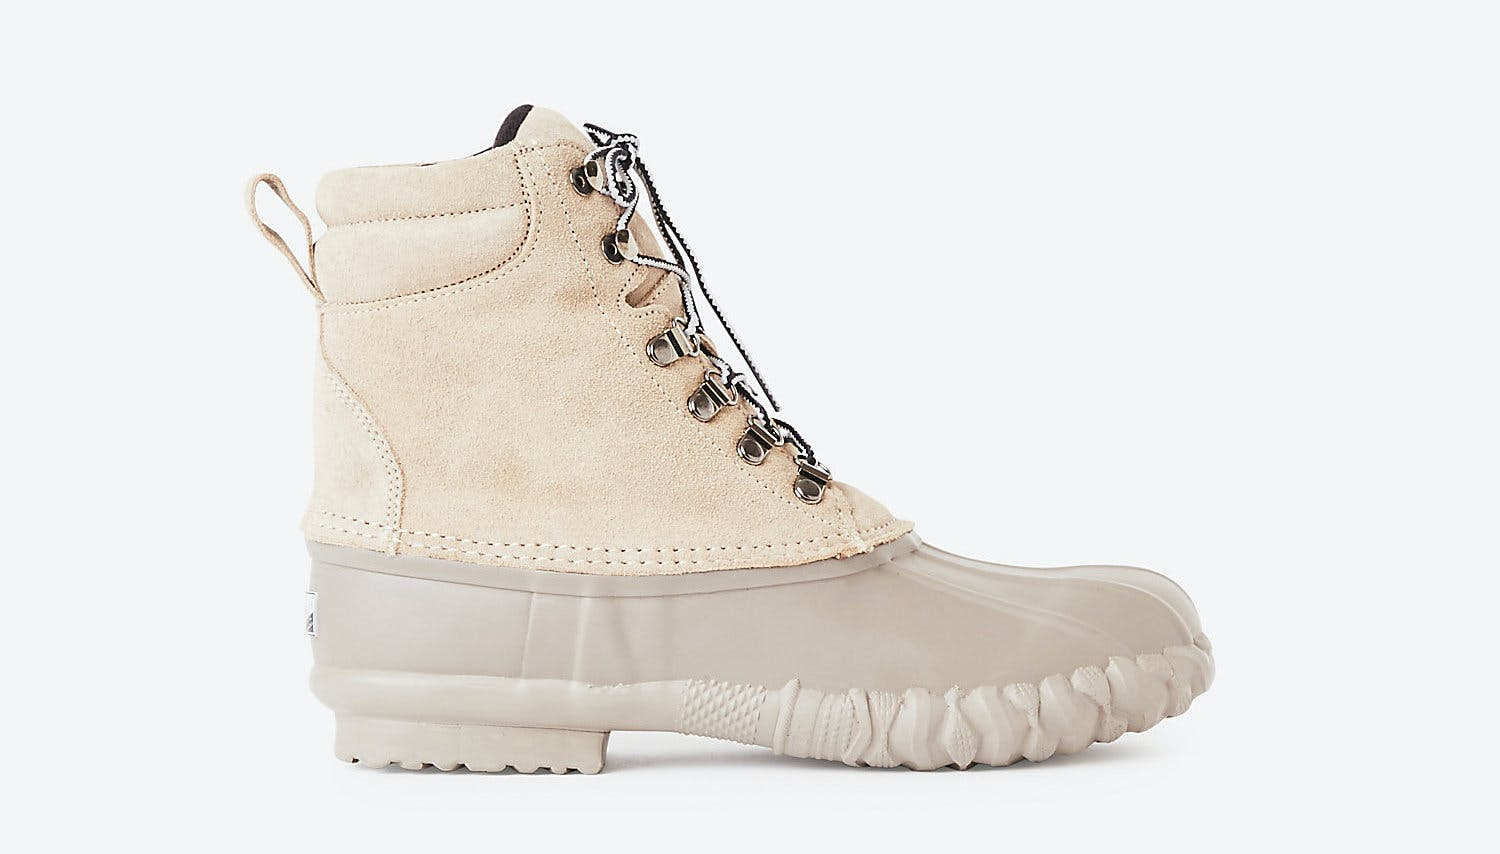 steven alan chicago winter boots